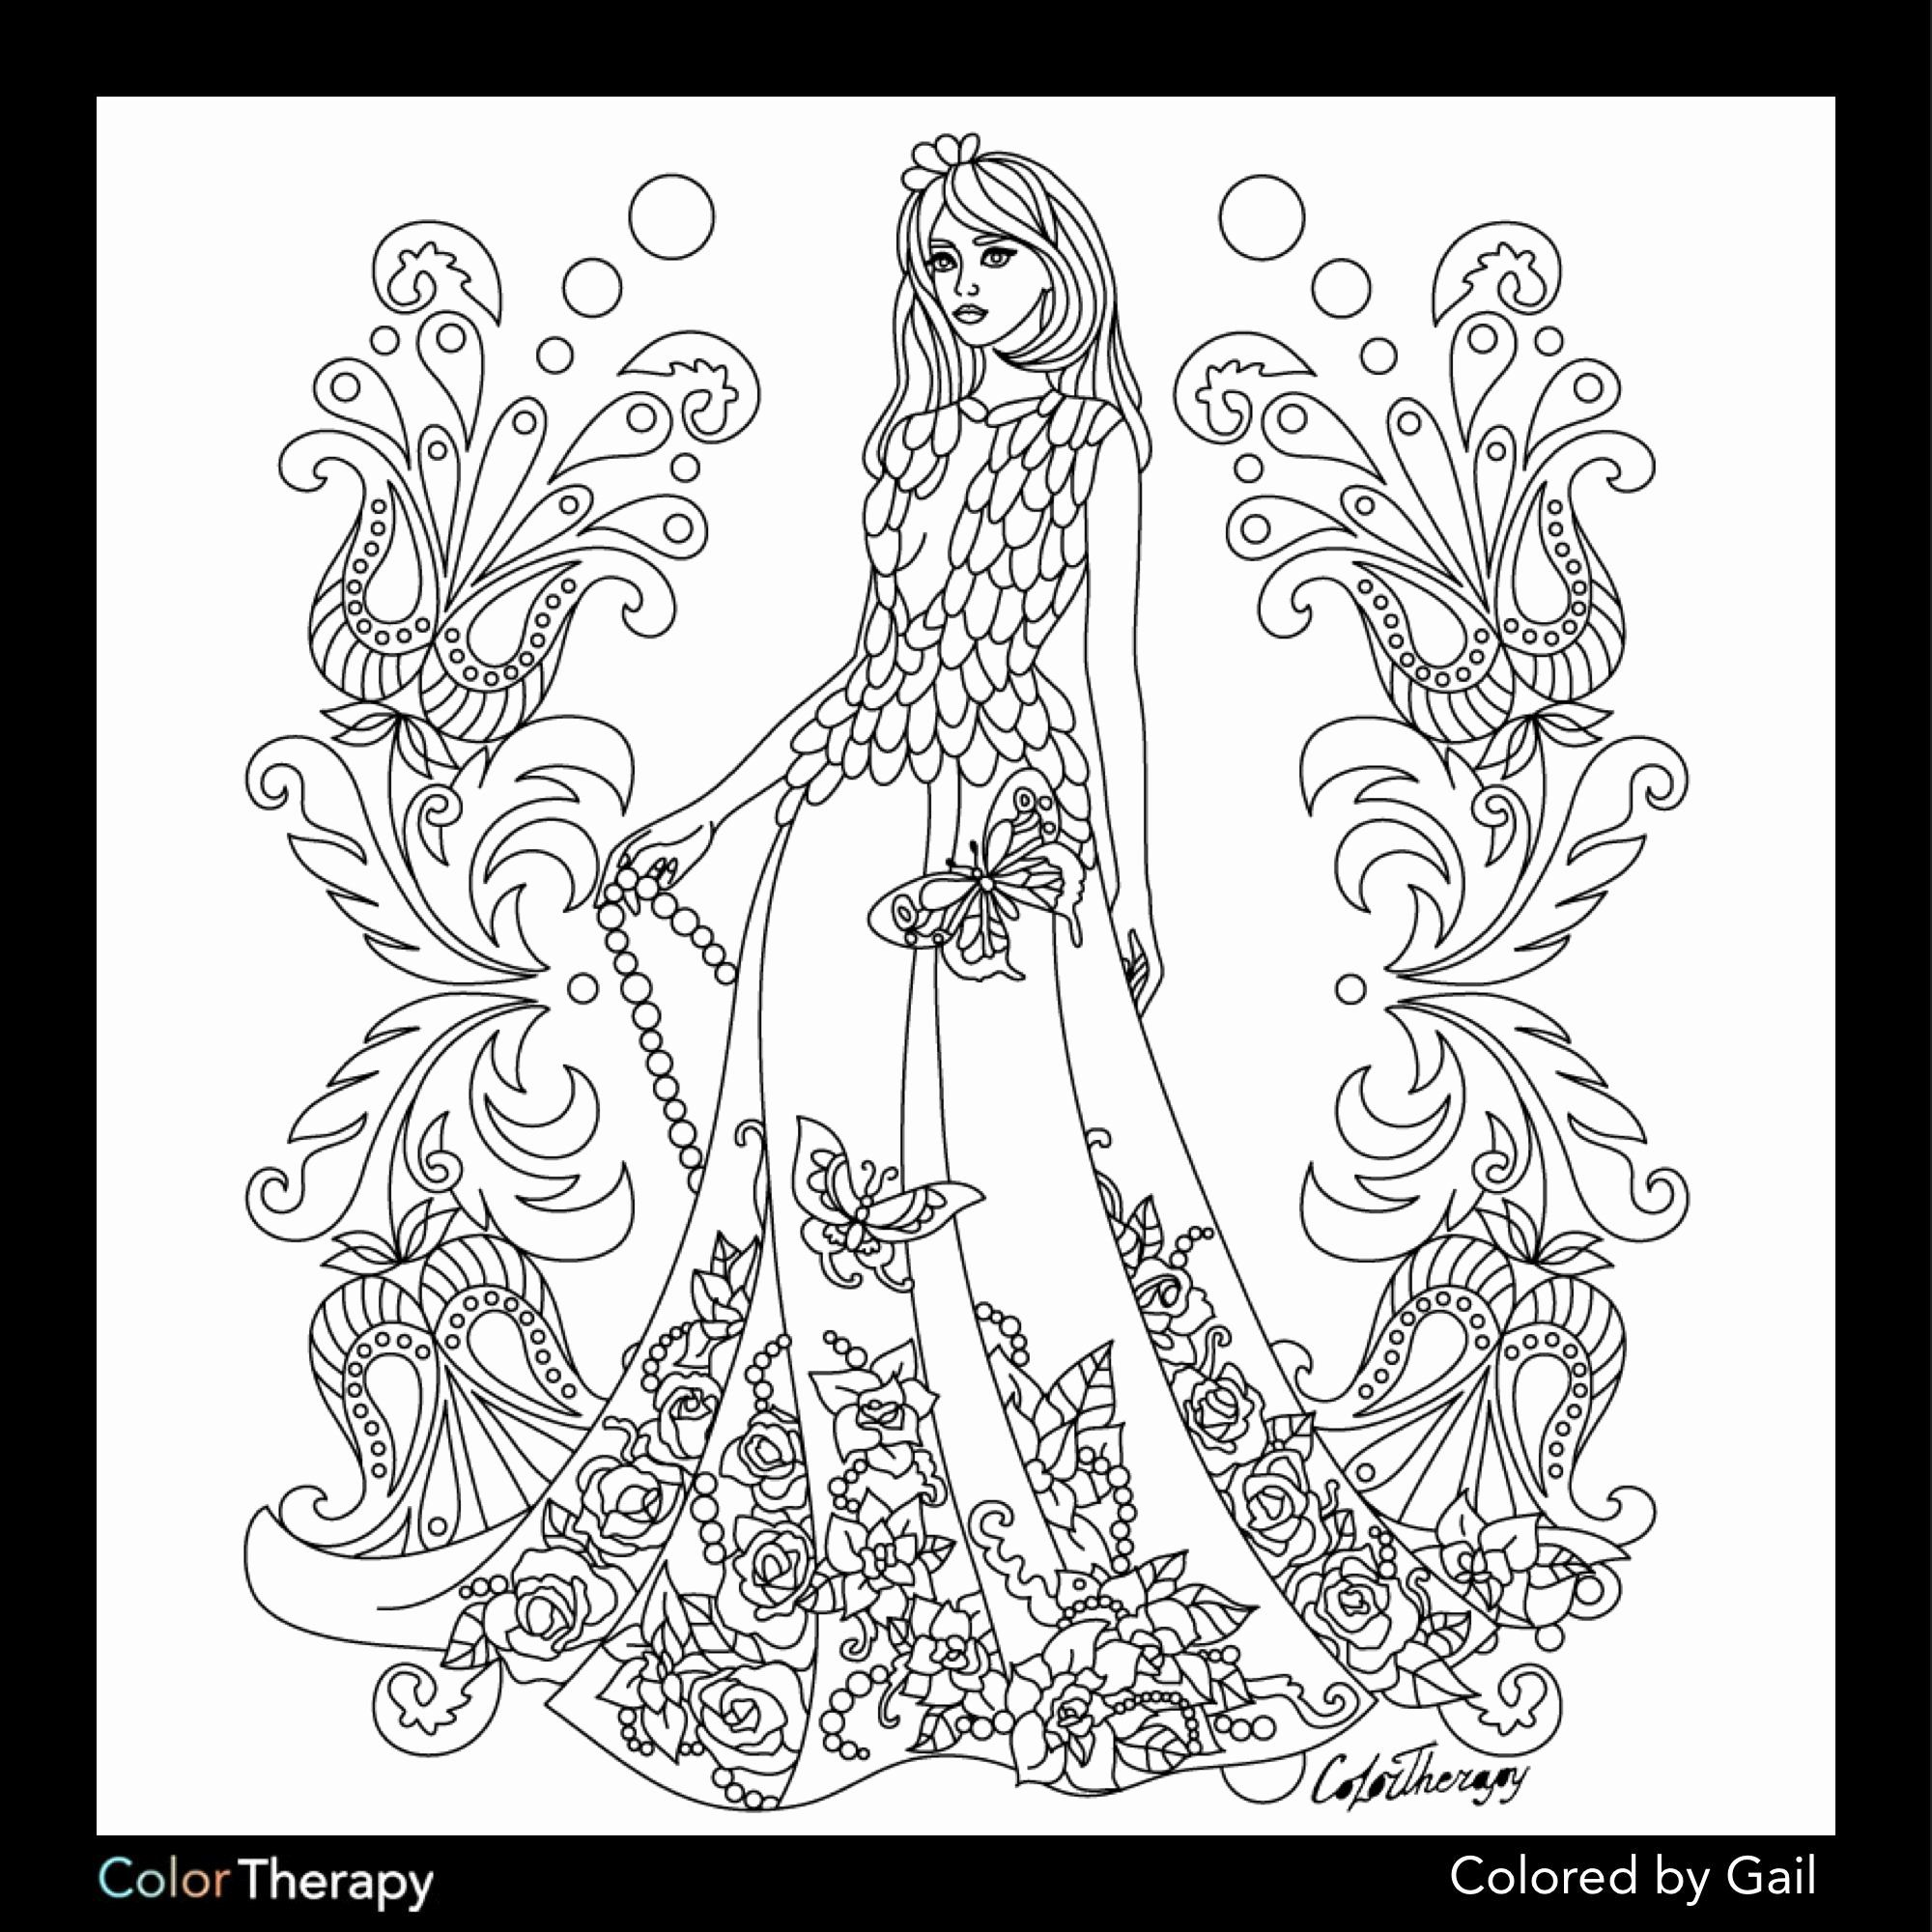 Therapy Coloring Books Beautiful I Colored This Myself Using Color Therapy App It Was So Fun And Relaxing And It S Coloring Books Coloring Pages Color Therapy